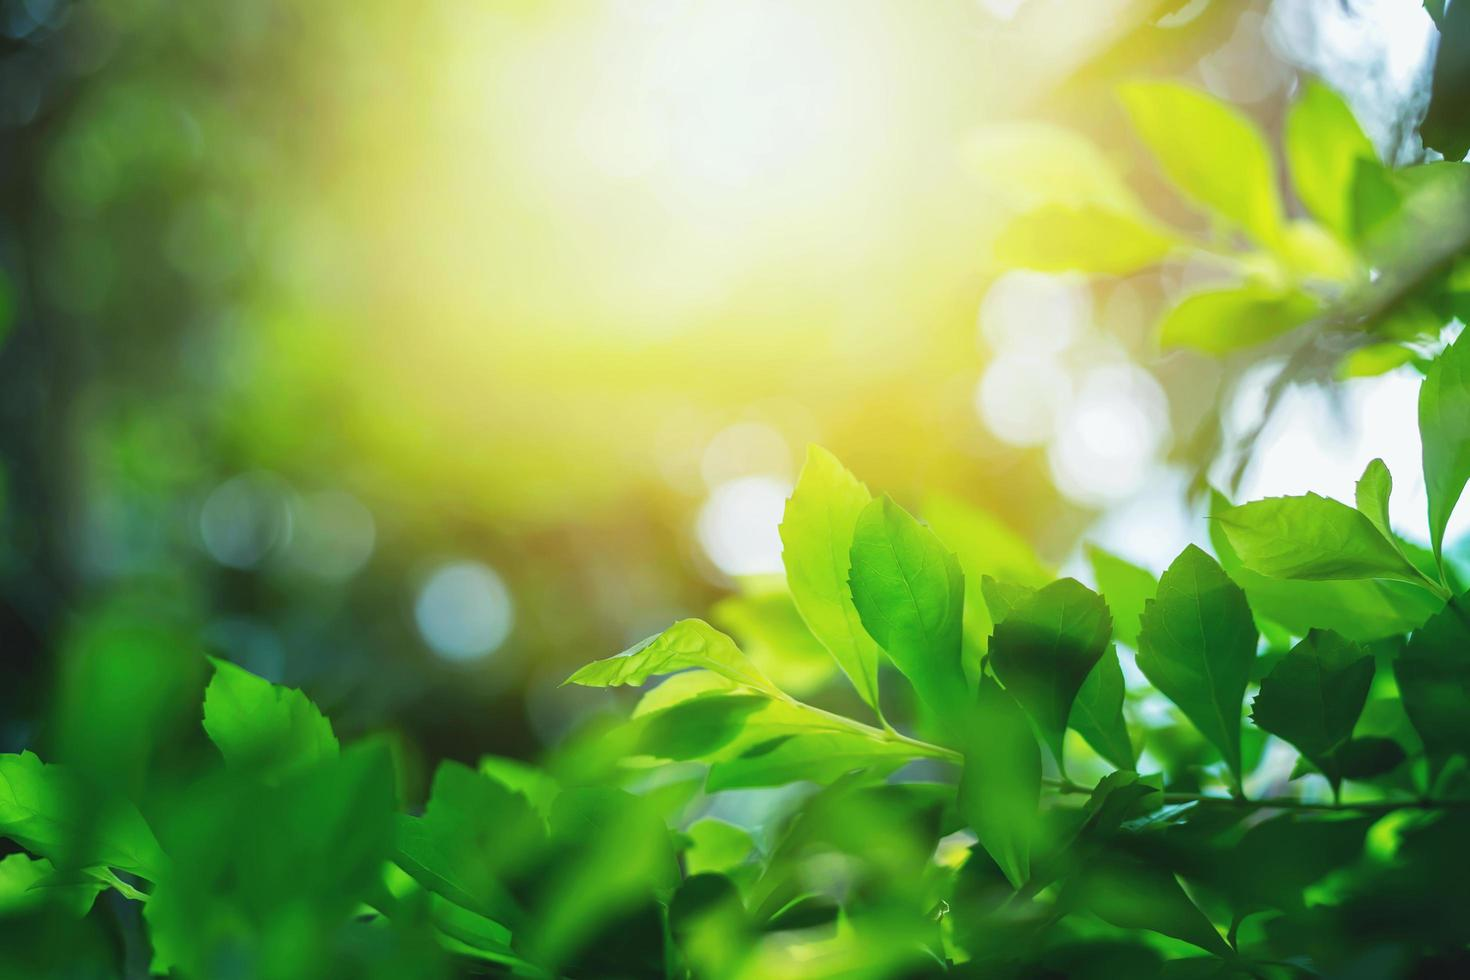 Green leaves and sunlight photo